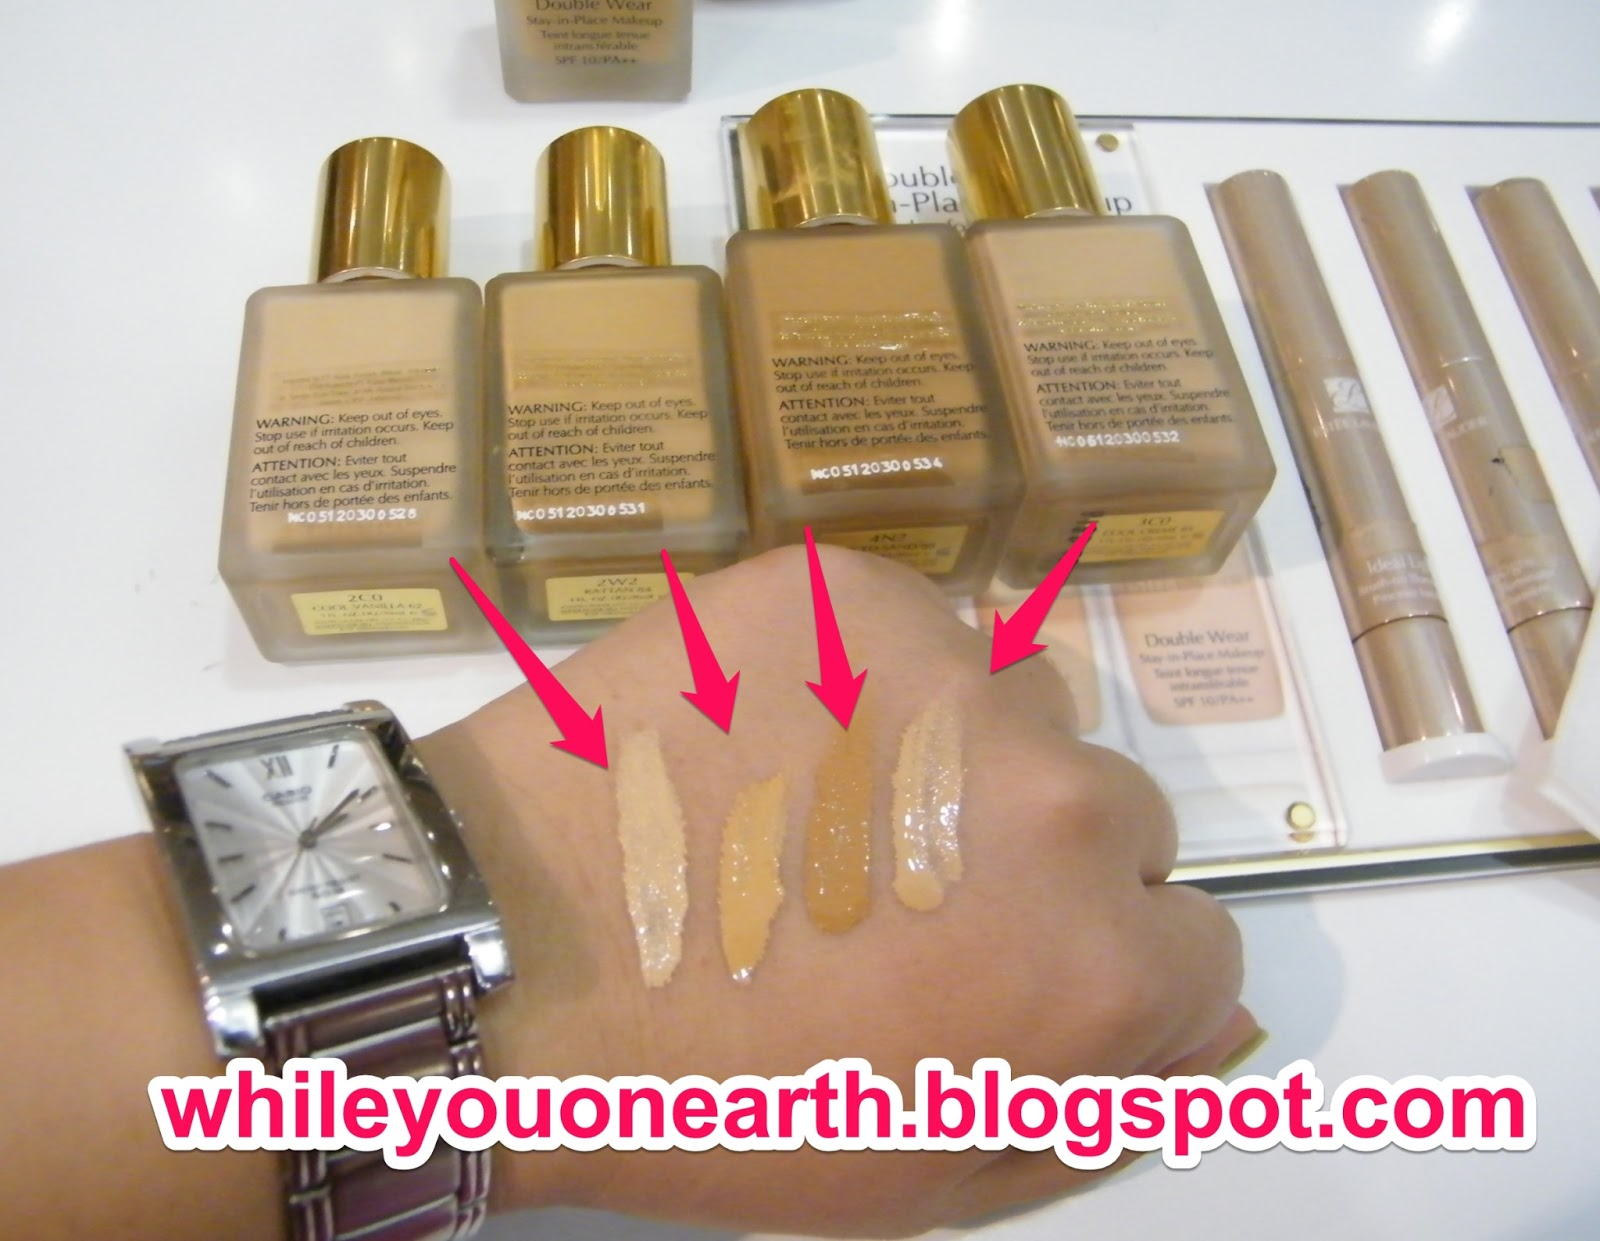 While You On Earth Estee Lauder Double Wear Stay In Place Makeup